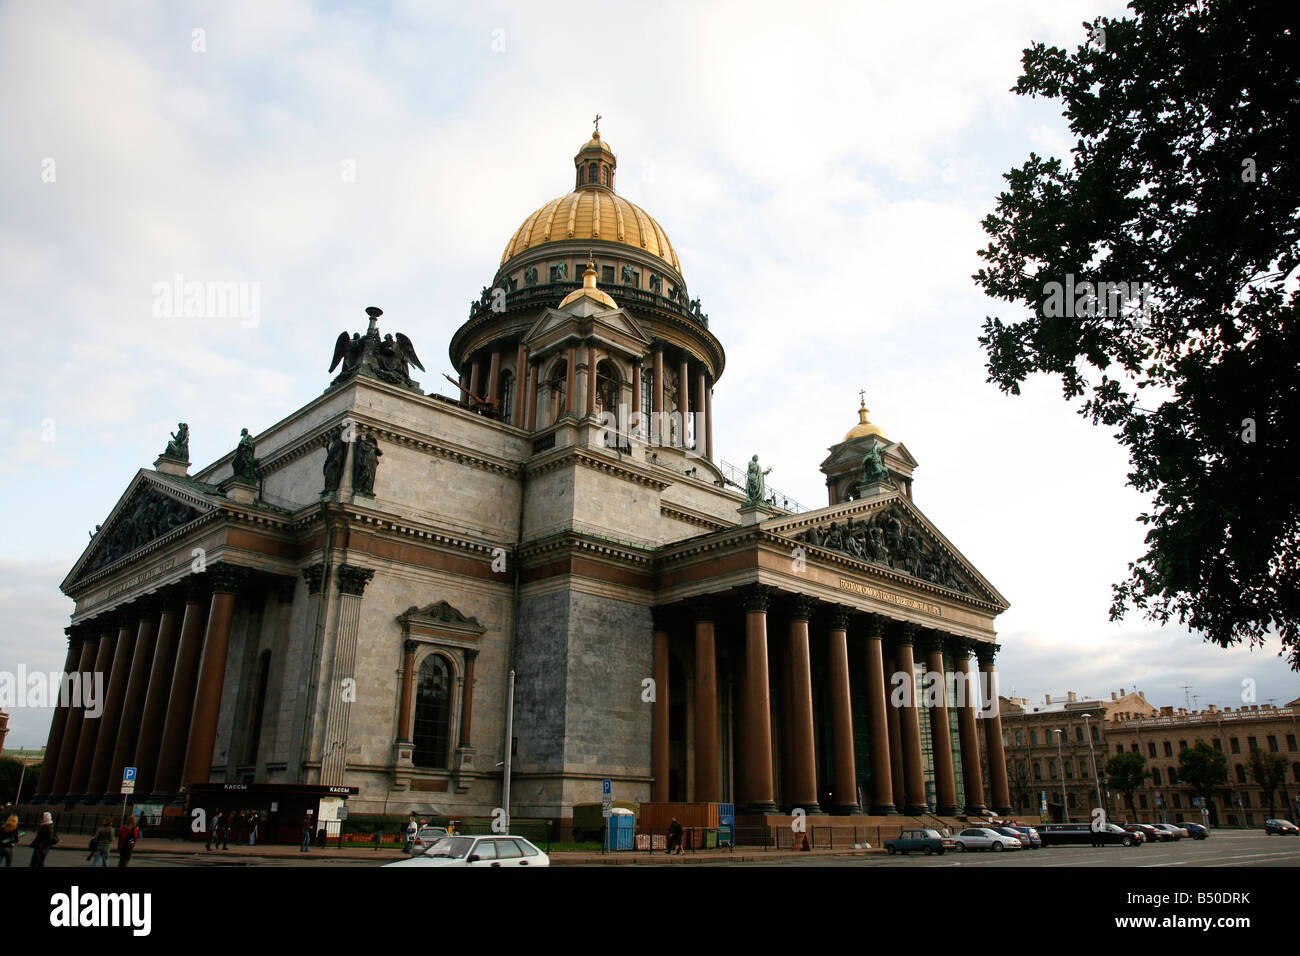 St Isaac s cathedral St Petersburg Russia - Stock Image